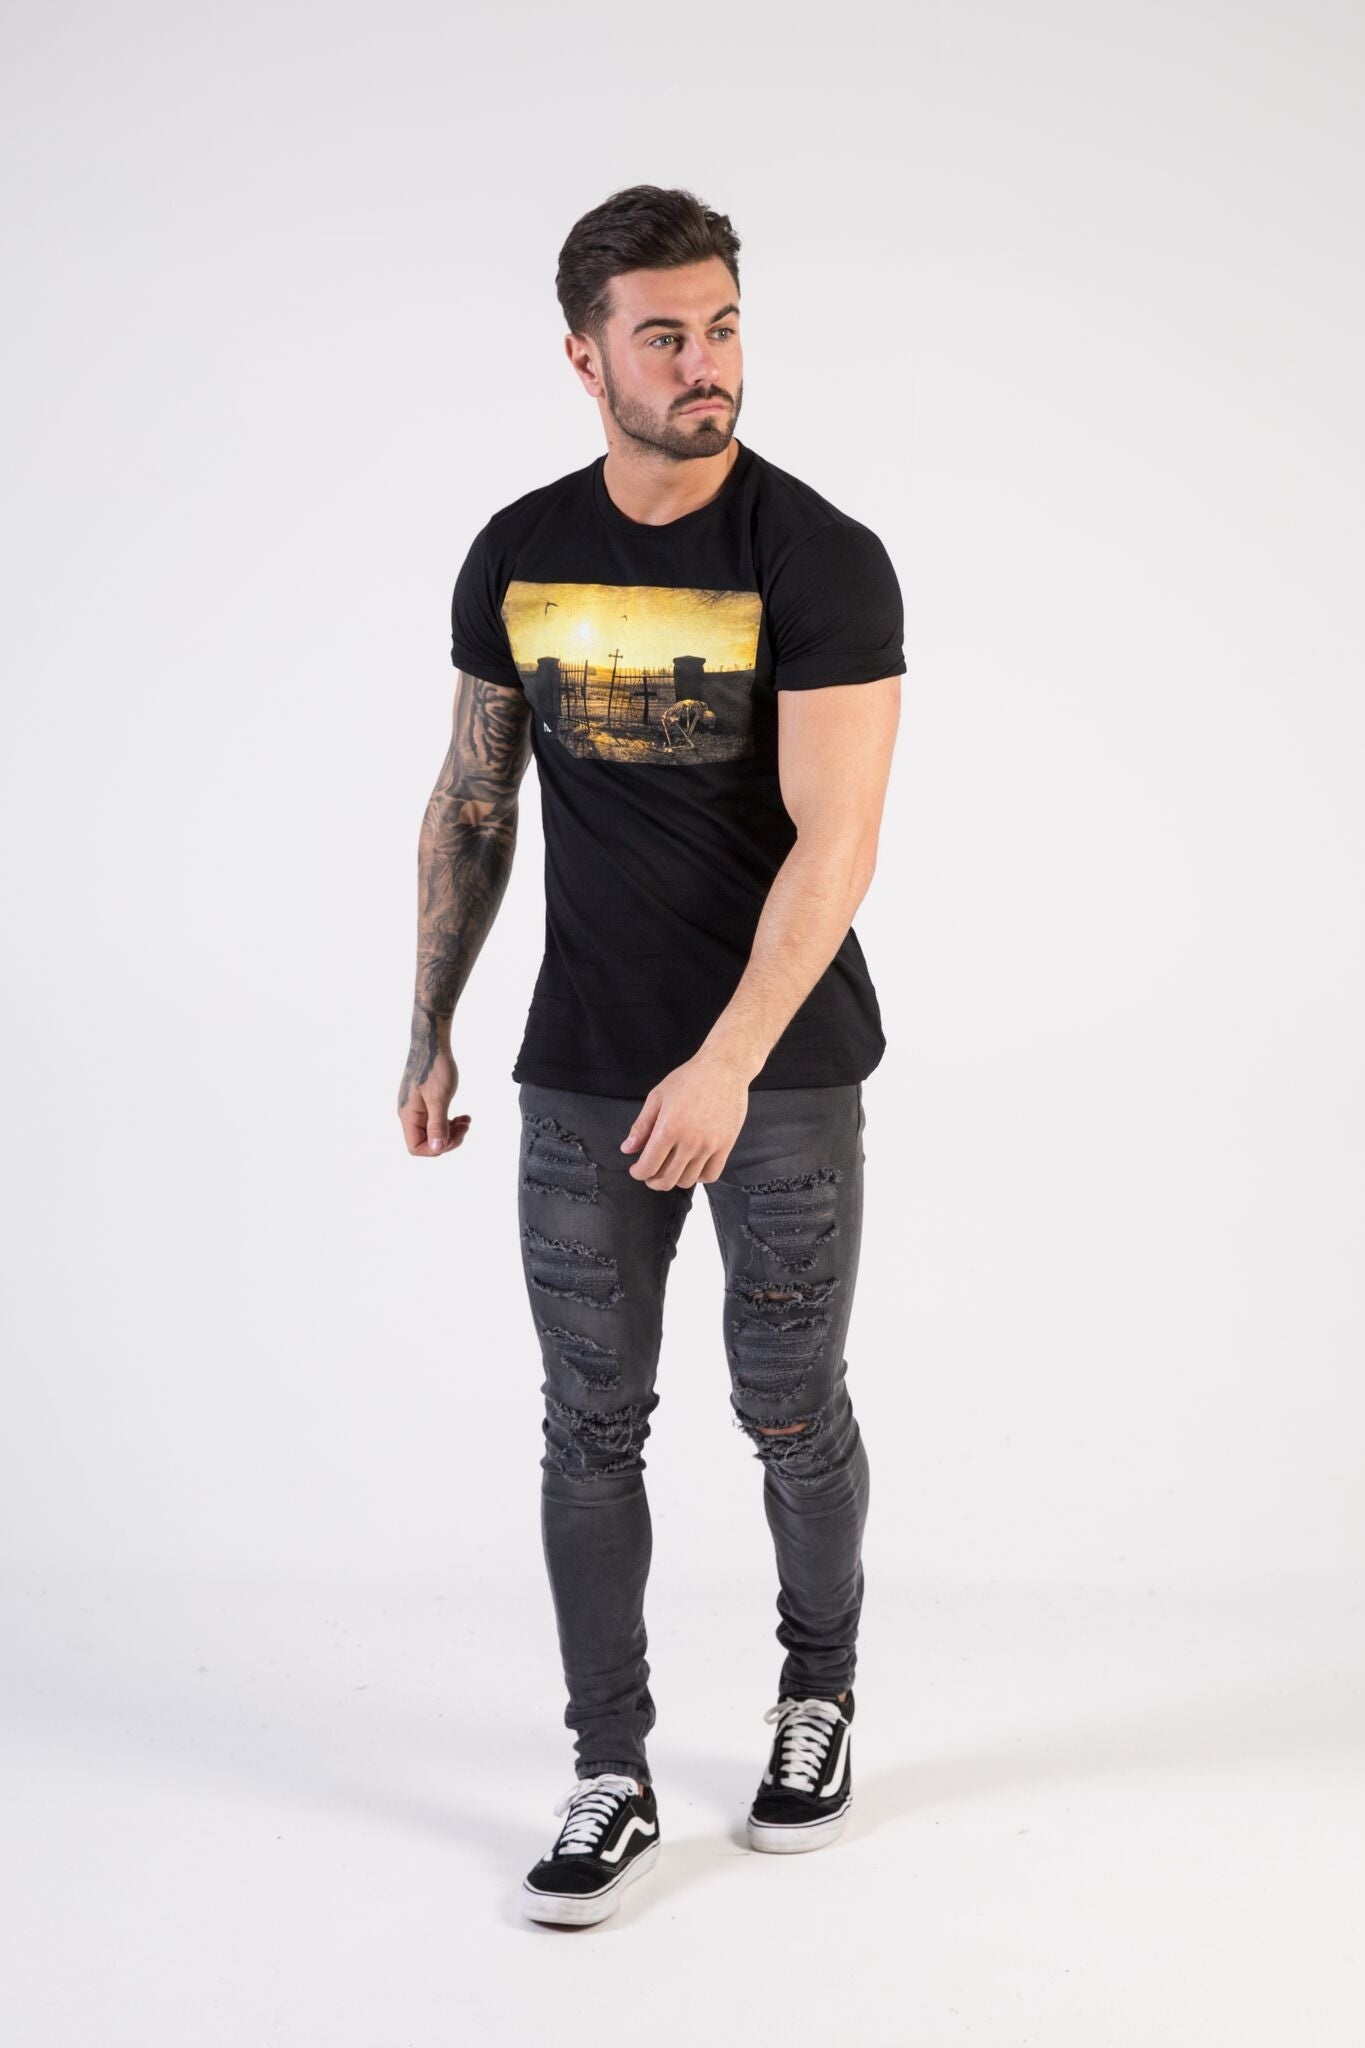 DAY OF THE DEAD Muscle Fit T-Shirt - HÖRFA is a men's global fashion brand that provides products such as Fashionable Watches, Wallets, Sunglasses, Belts, Beard and Male Grooming Products